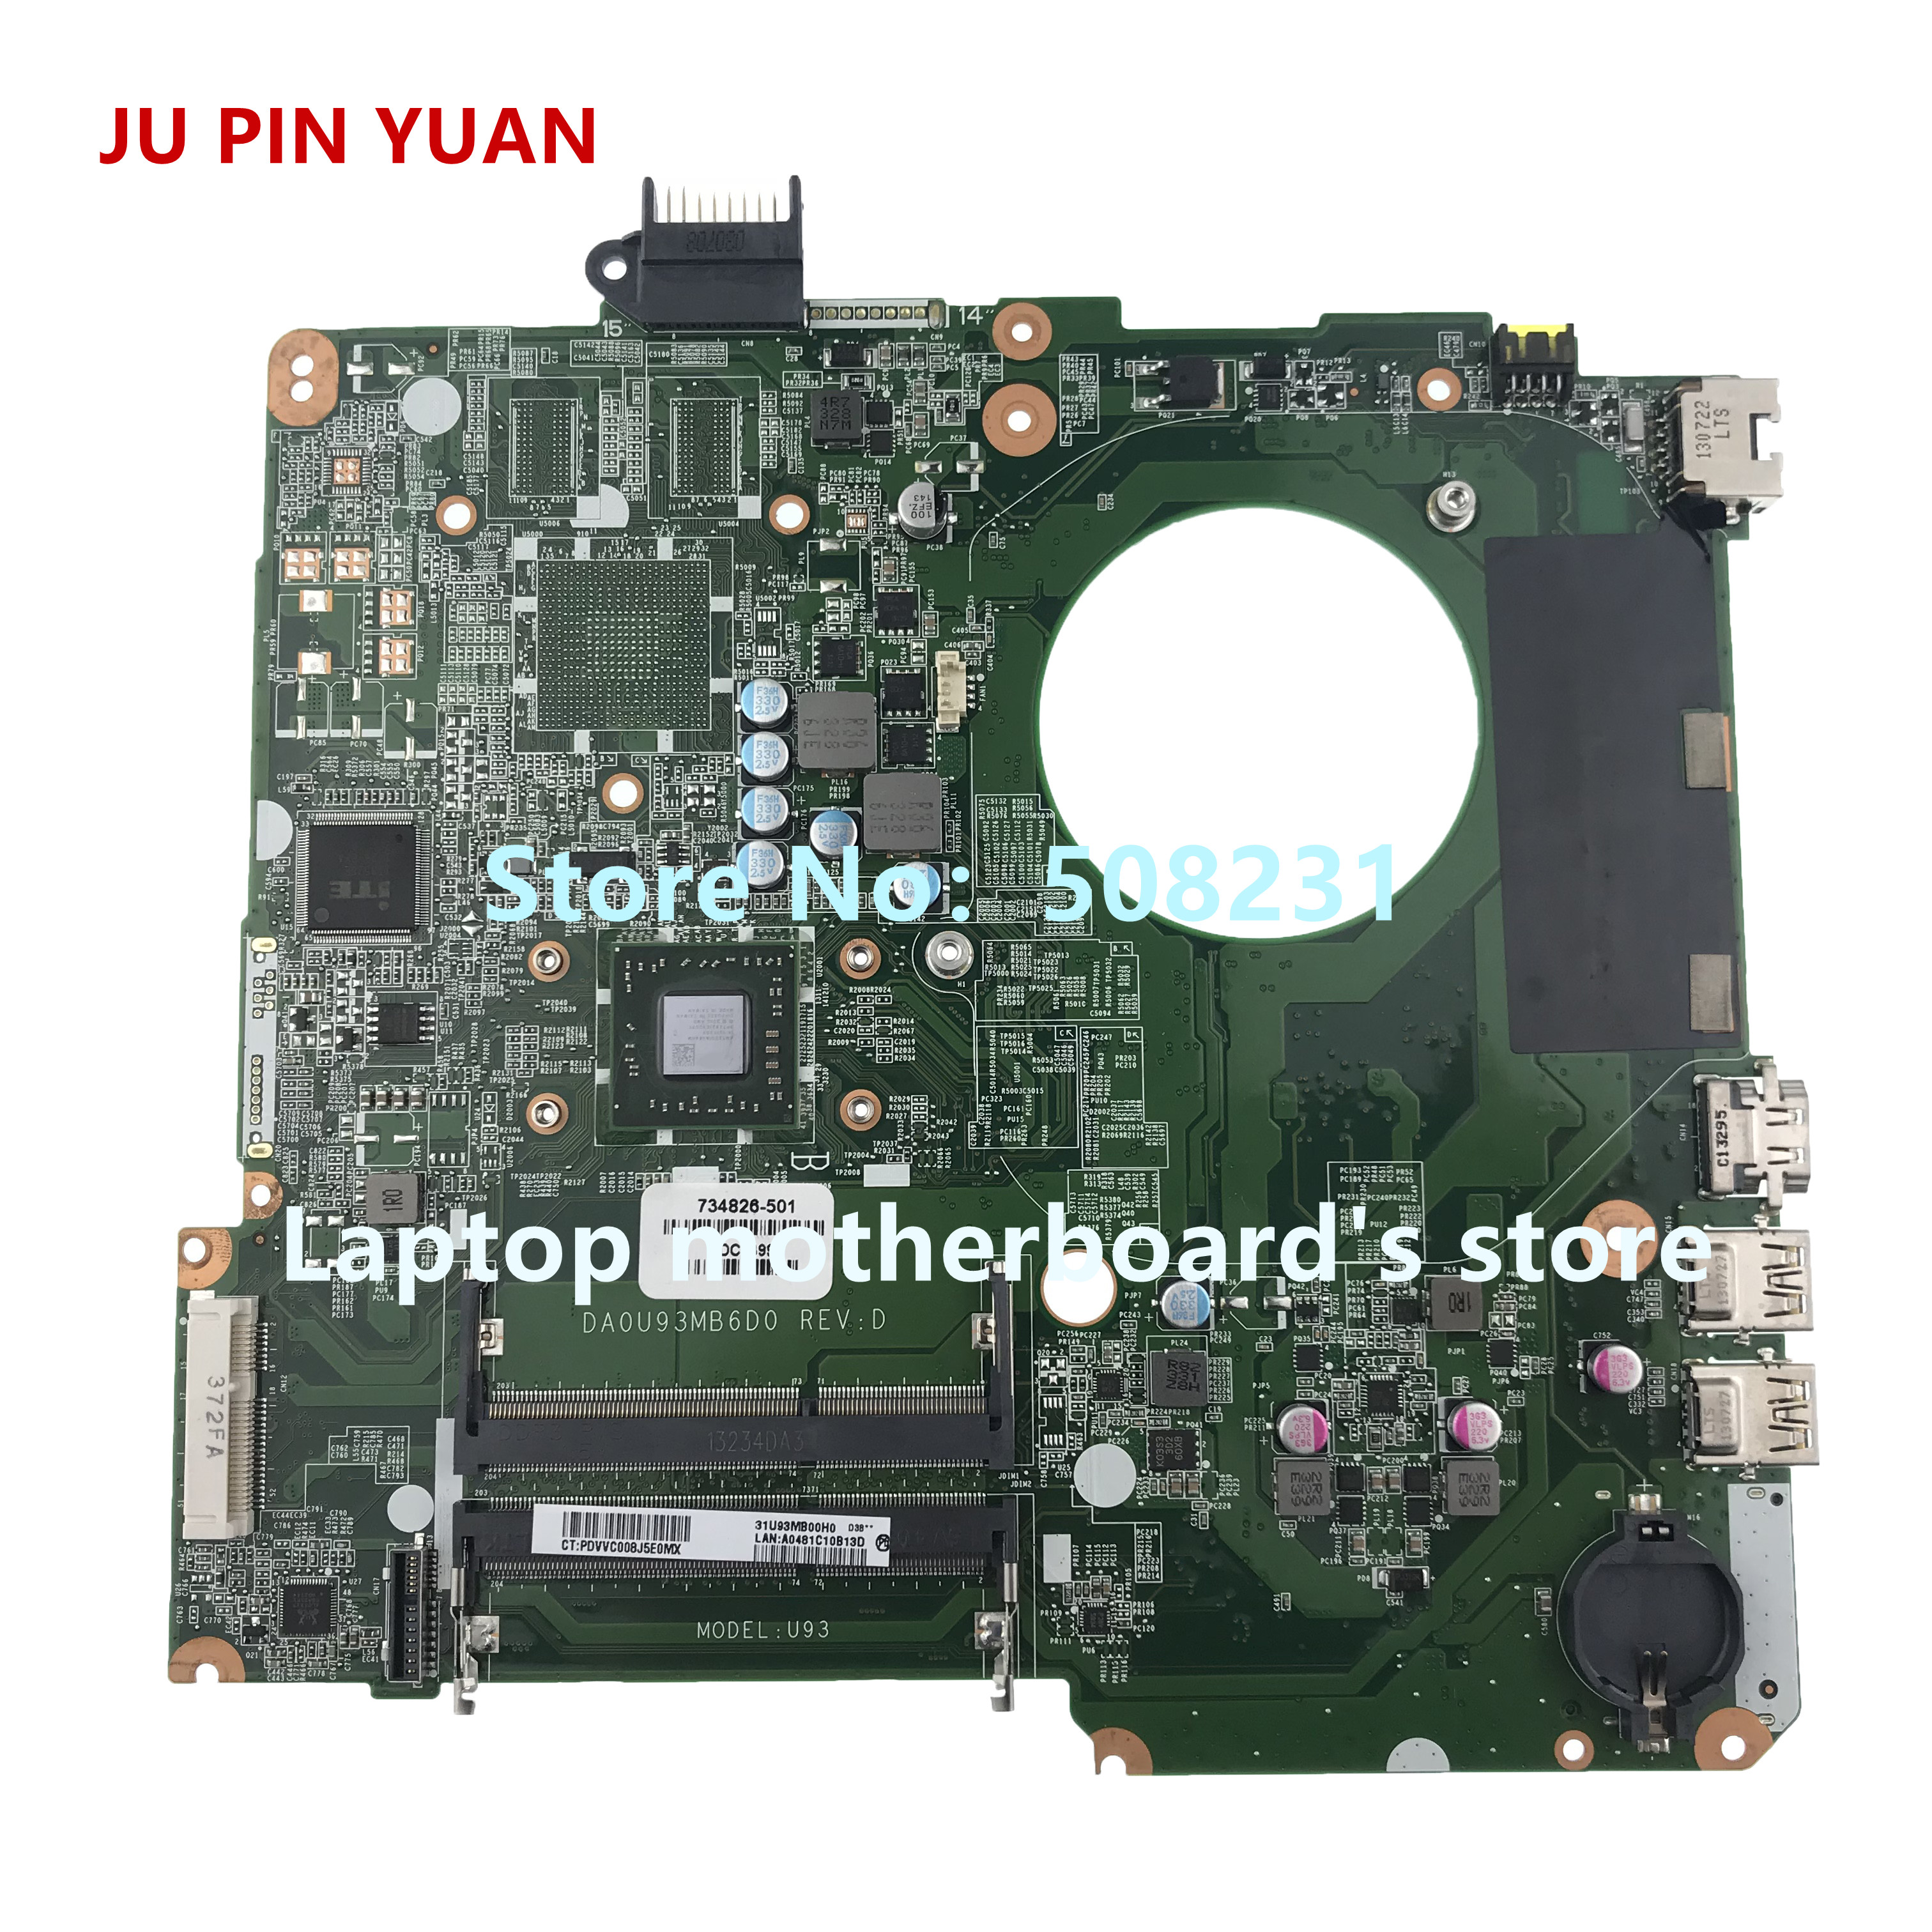 JU PIN YUAN 734826-501 734826-001 U93 DA0U93MB6D0 mainboard for HP PAVILION 15-N 15-F 15Z-N laptop motherboard fully TestedJU PIN YUAN 734826-501 734826-001 U93 DA0U93MB6D0 mainboard for HP PAVILION 15-N 15-F 15Z-N laptop motherboard fully Tested